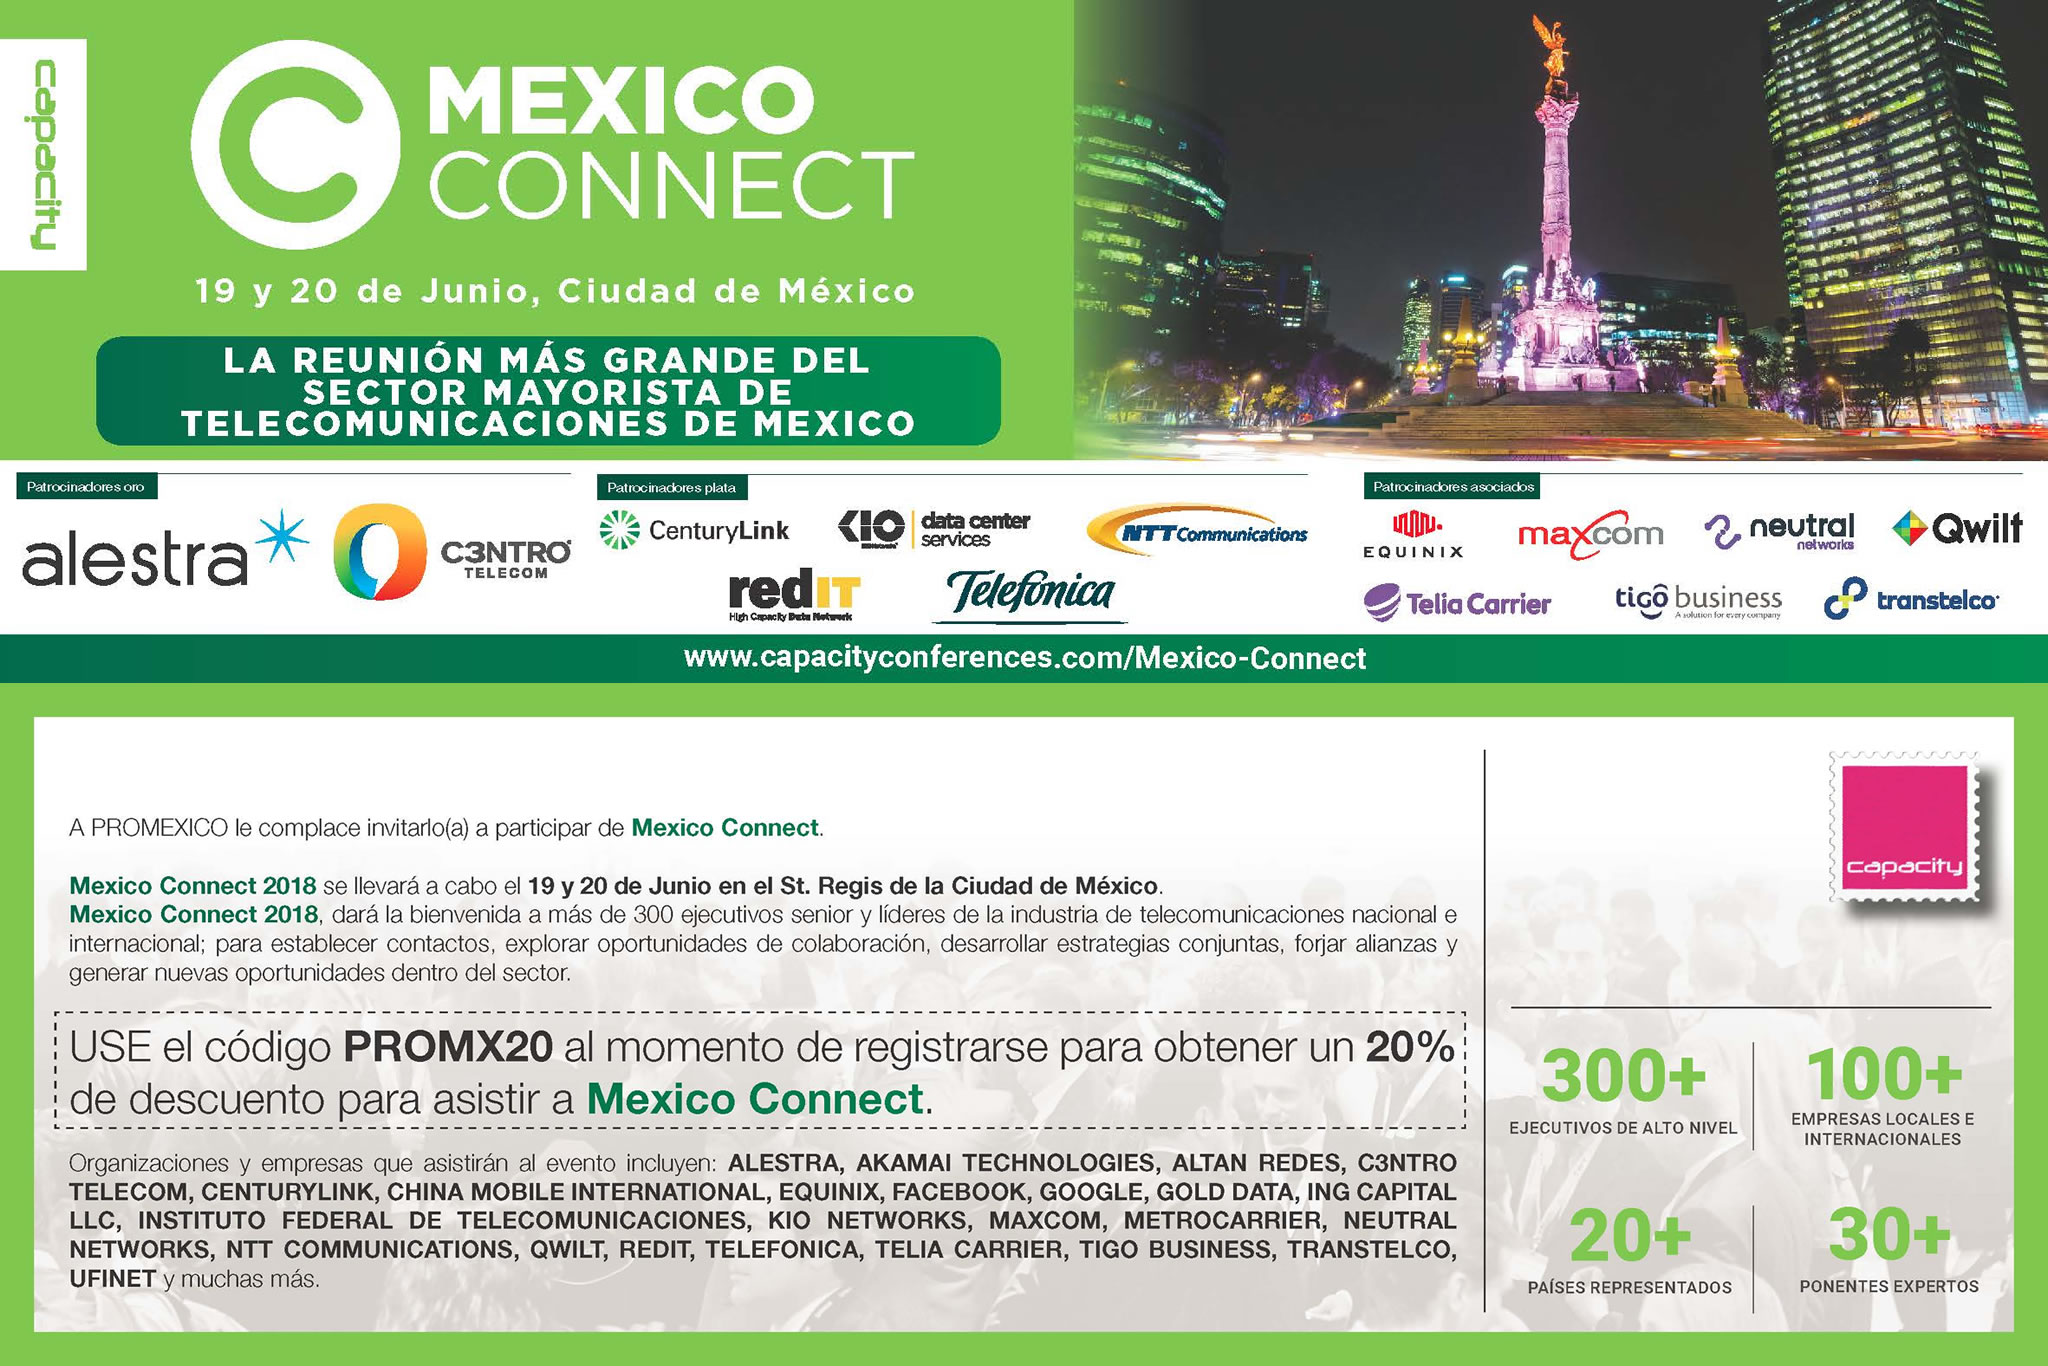 /cms/uploads/image/file/406836/mexico-connect-flyer.jpg